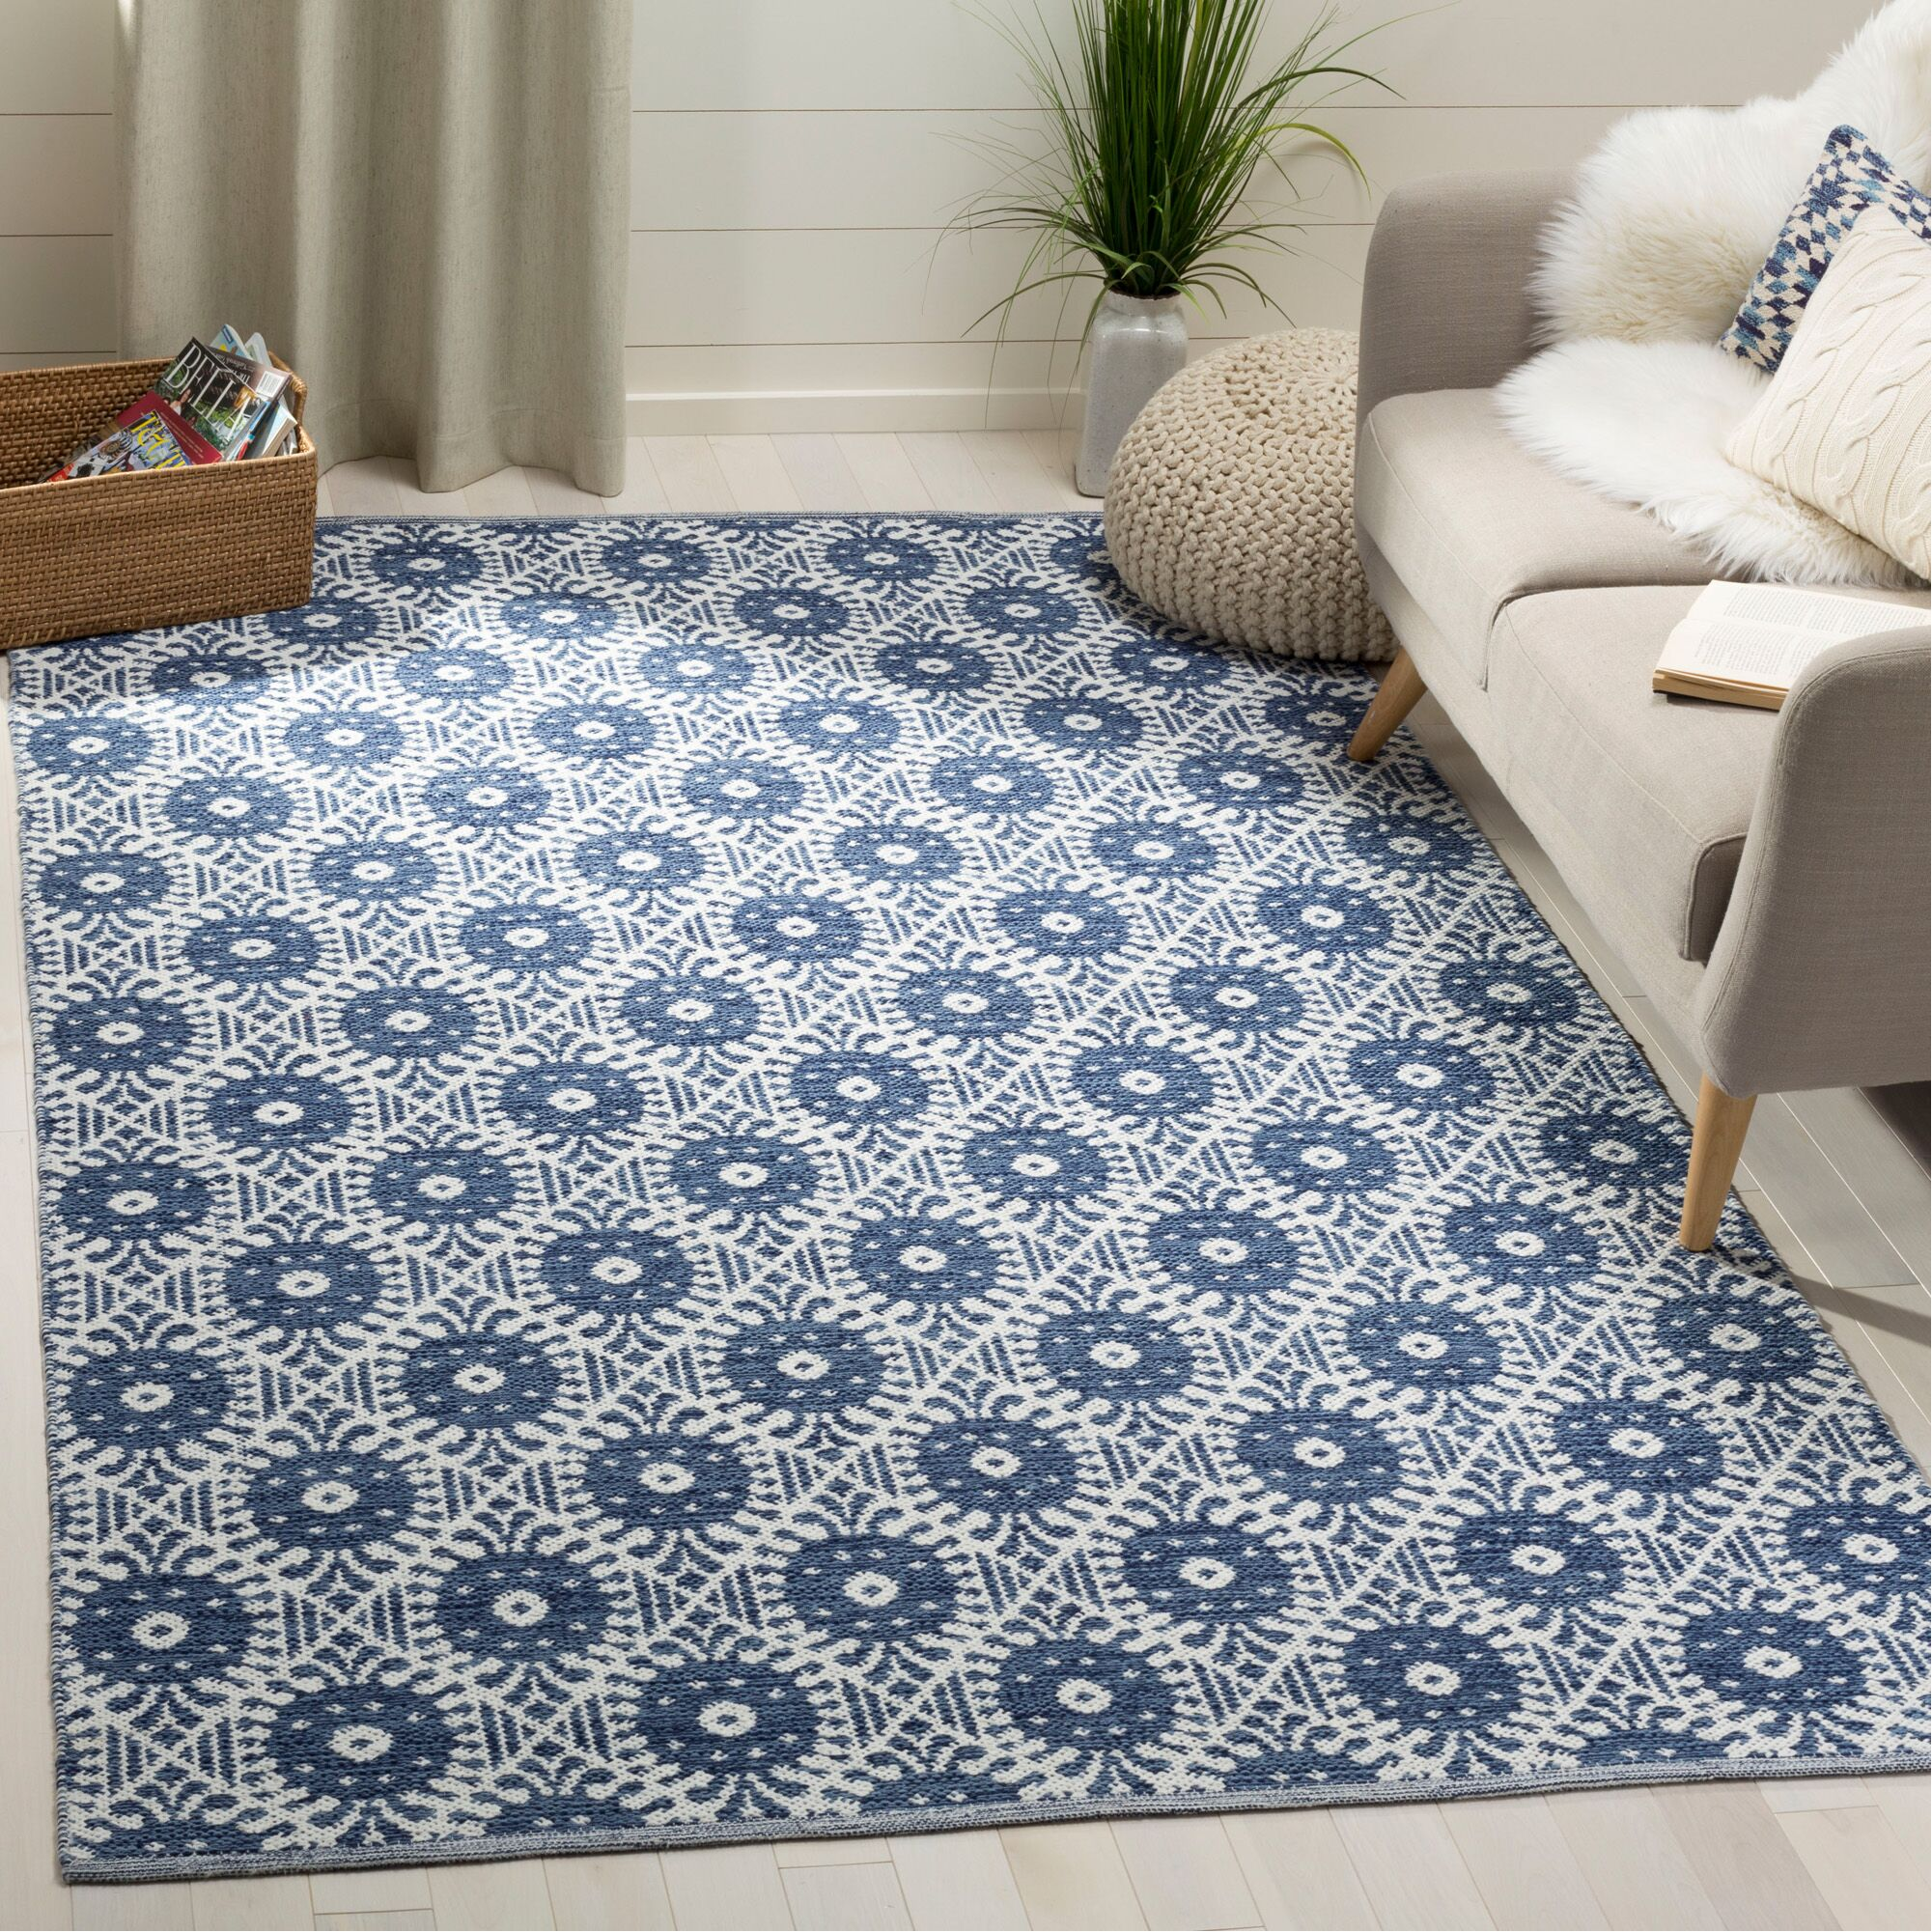 Clemence Hand-Woven Navy/Ivory Area Rug Rug Size: Rectangle 5' x 8'